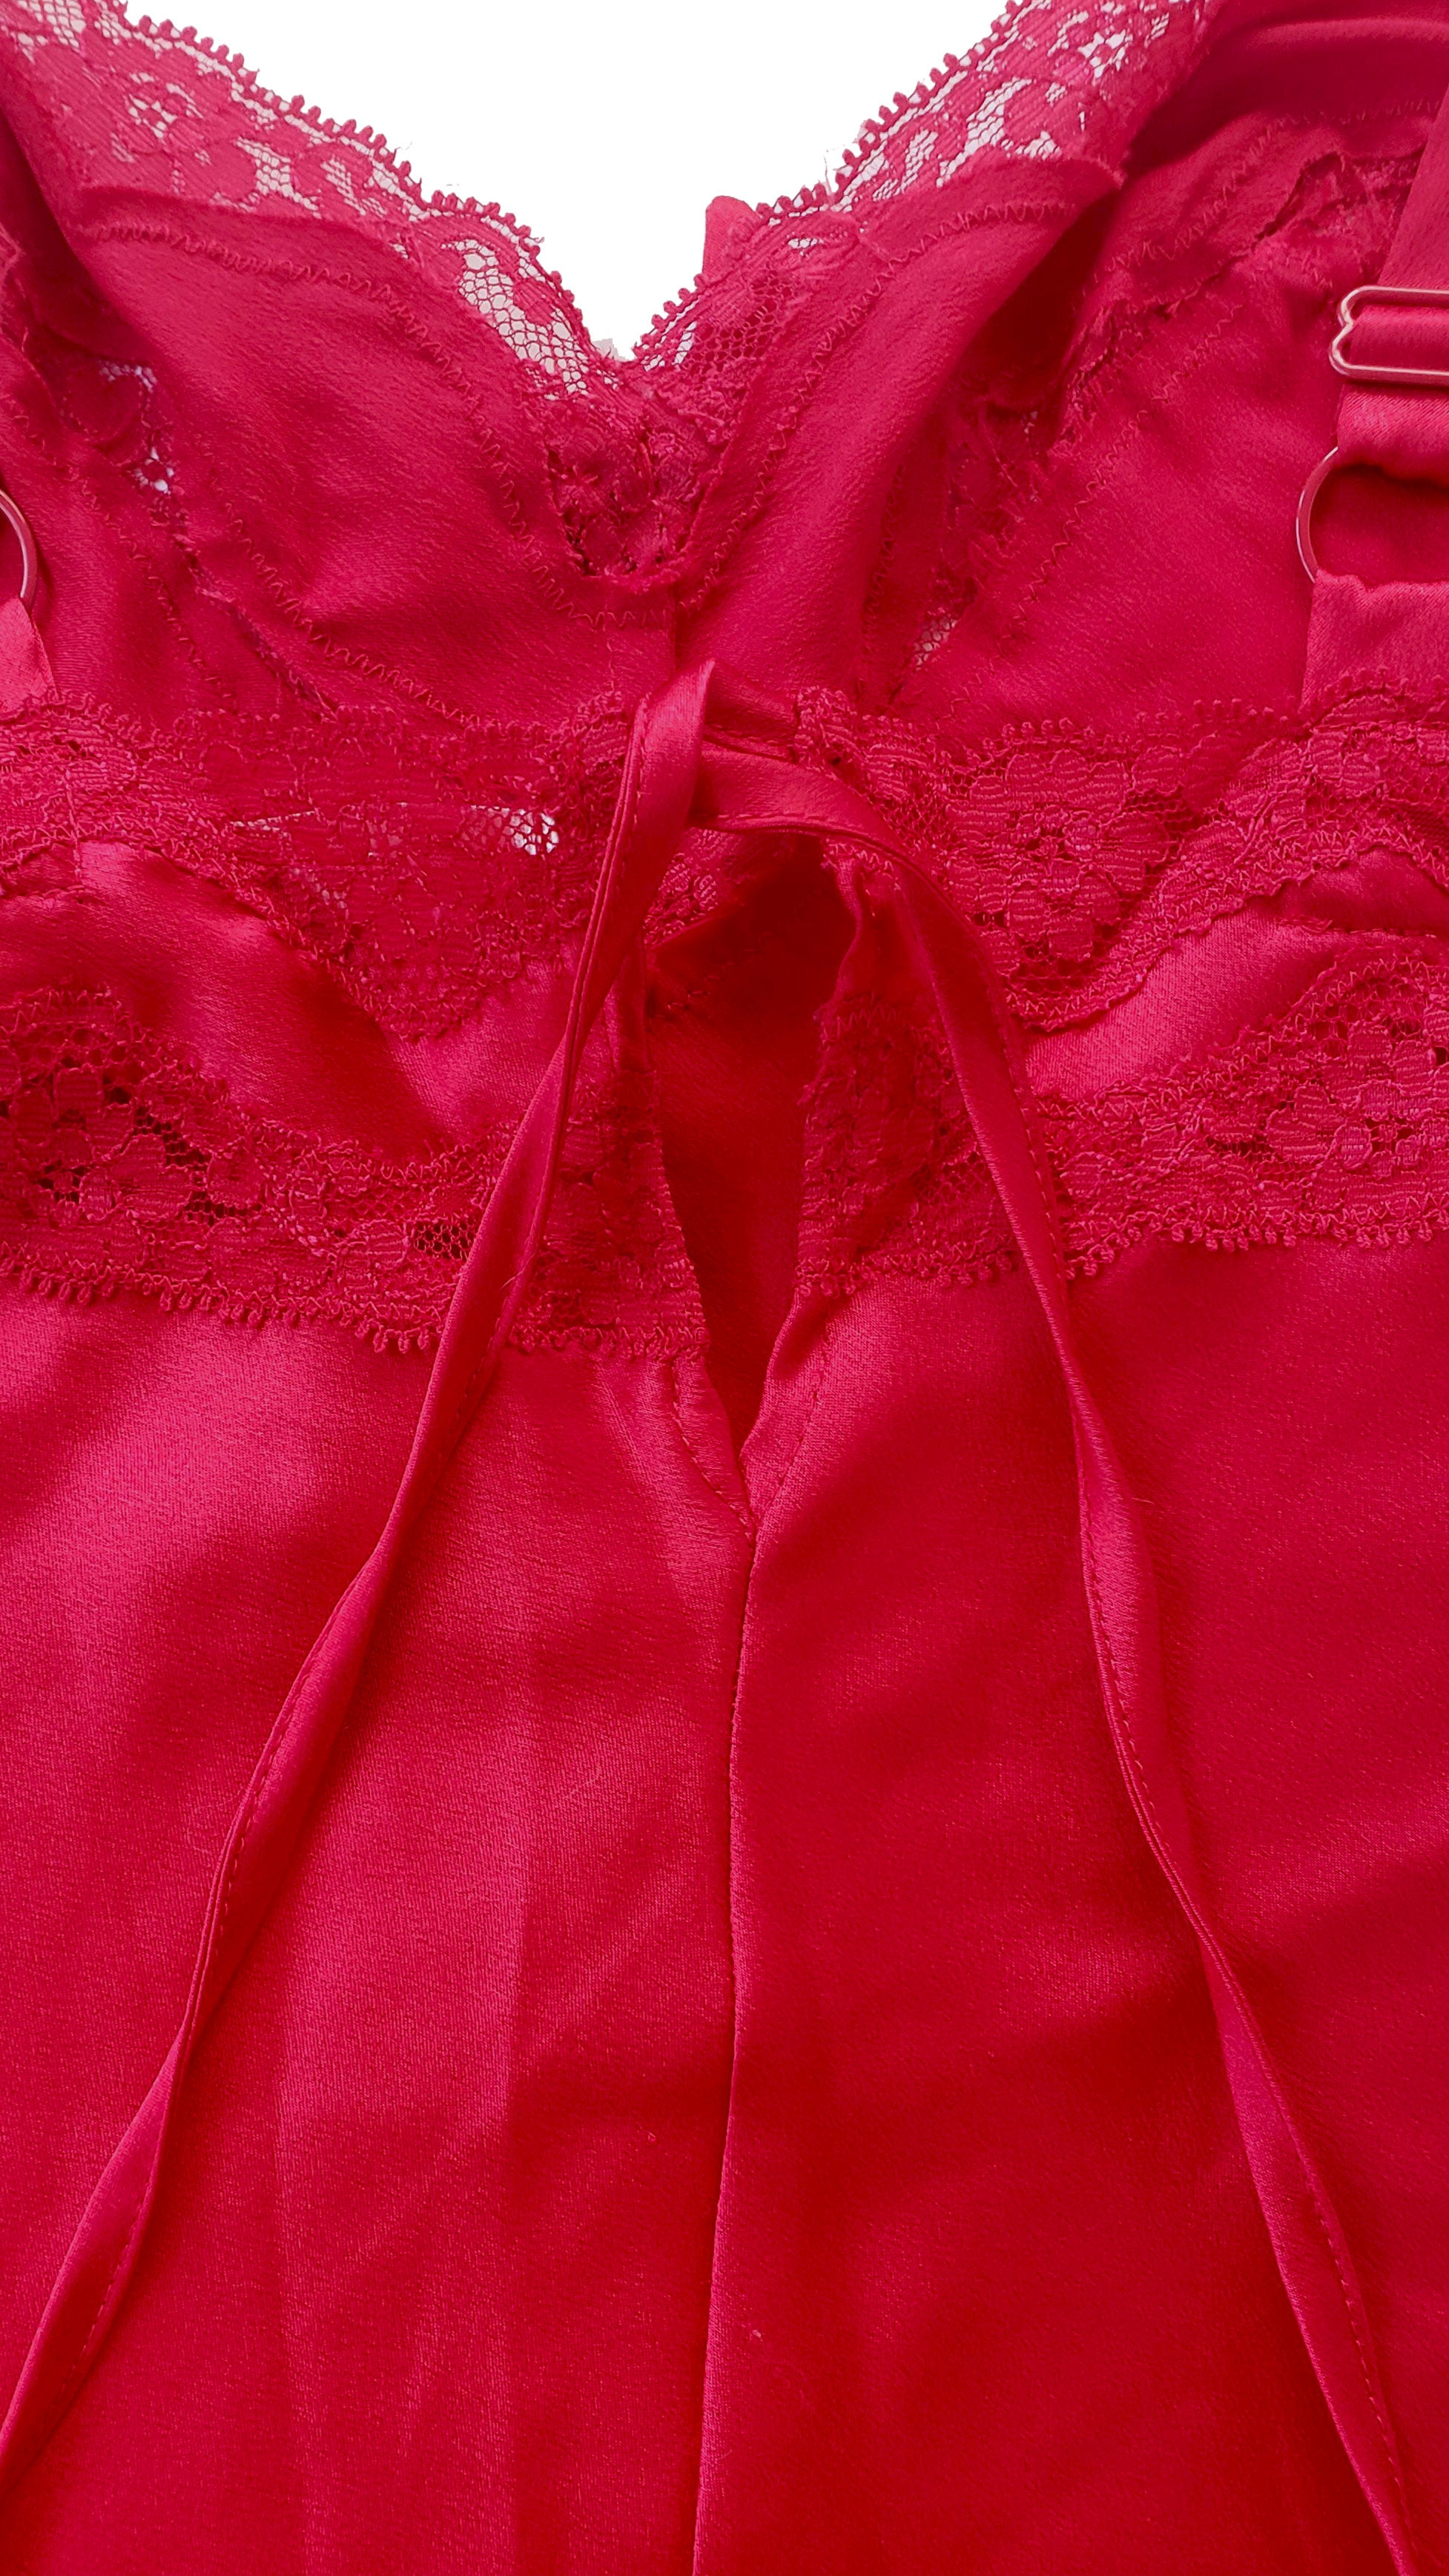 90s Victoria's Secret Angels Satin & Lace Romper